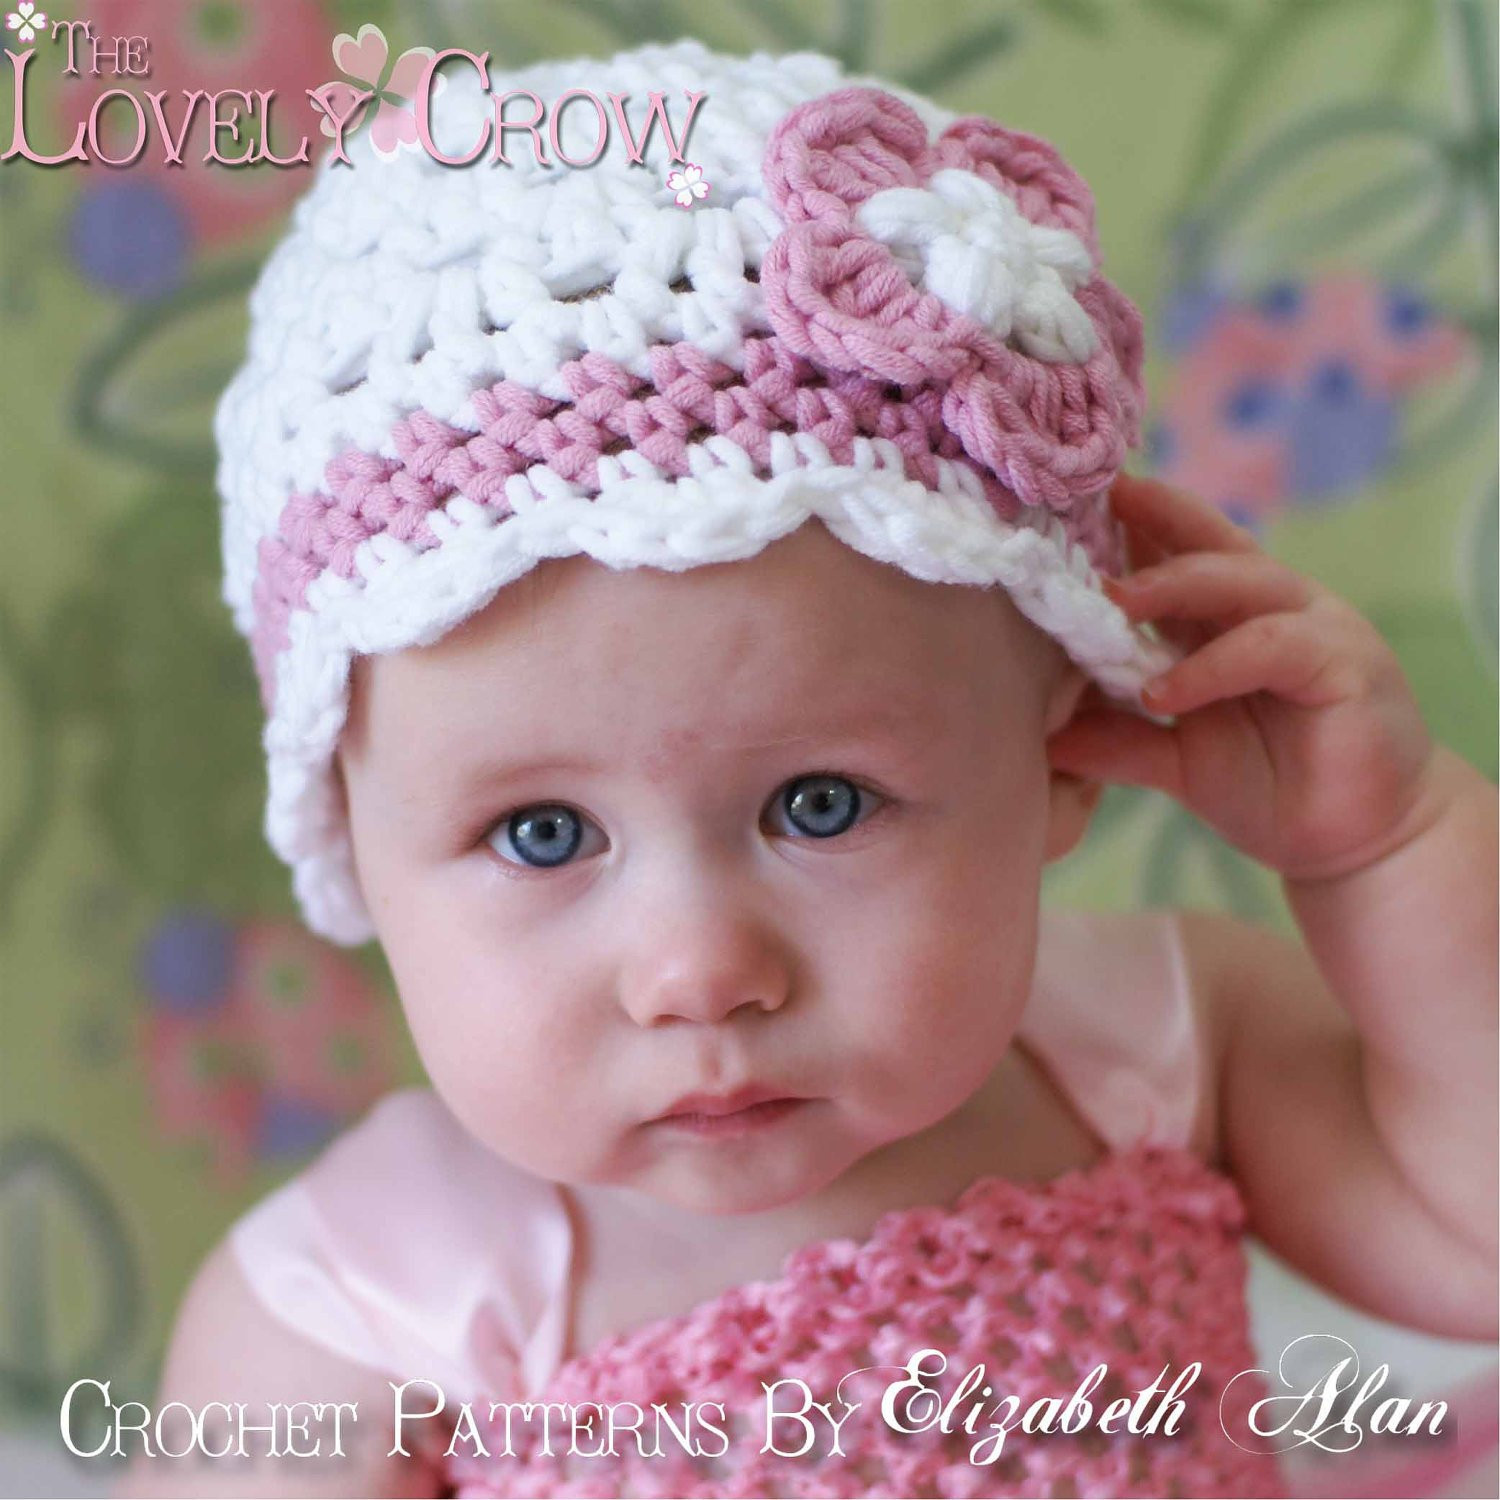 Elegant Baby Beanie Crochet Pattern for Bulky Yarn Princess Beanie Crochet toddler Beanie Of Delightful 40 Ideas Crochet toddler Beanie